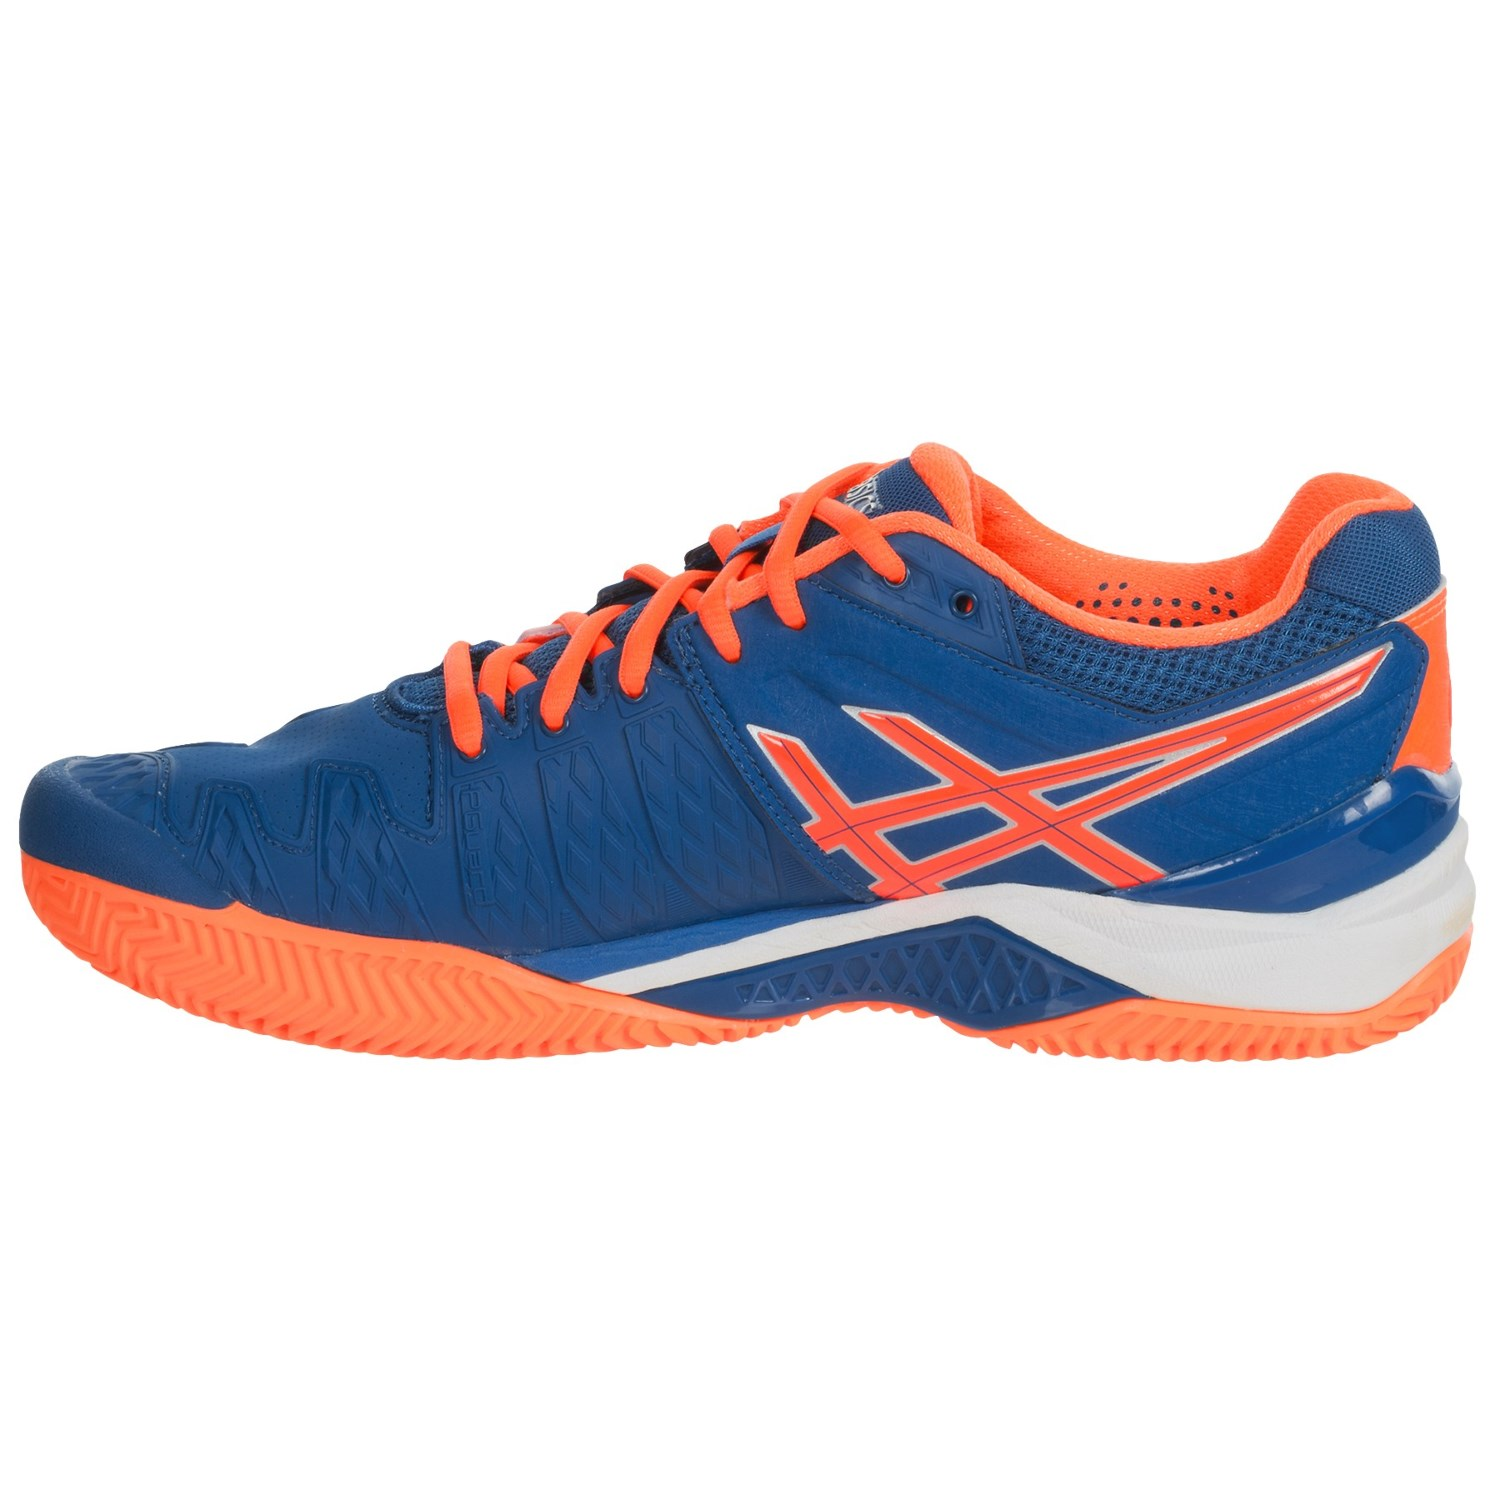 Outdoor Tennis Court Shoes